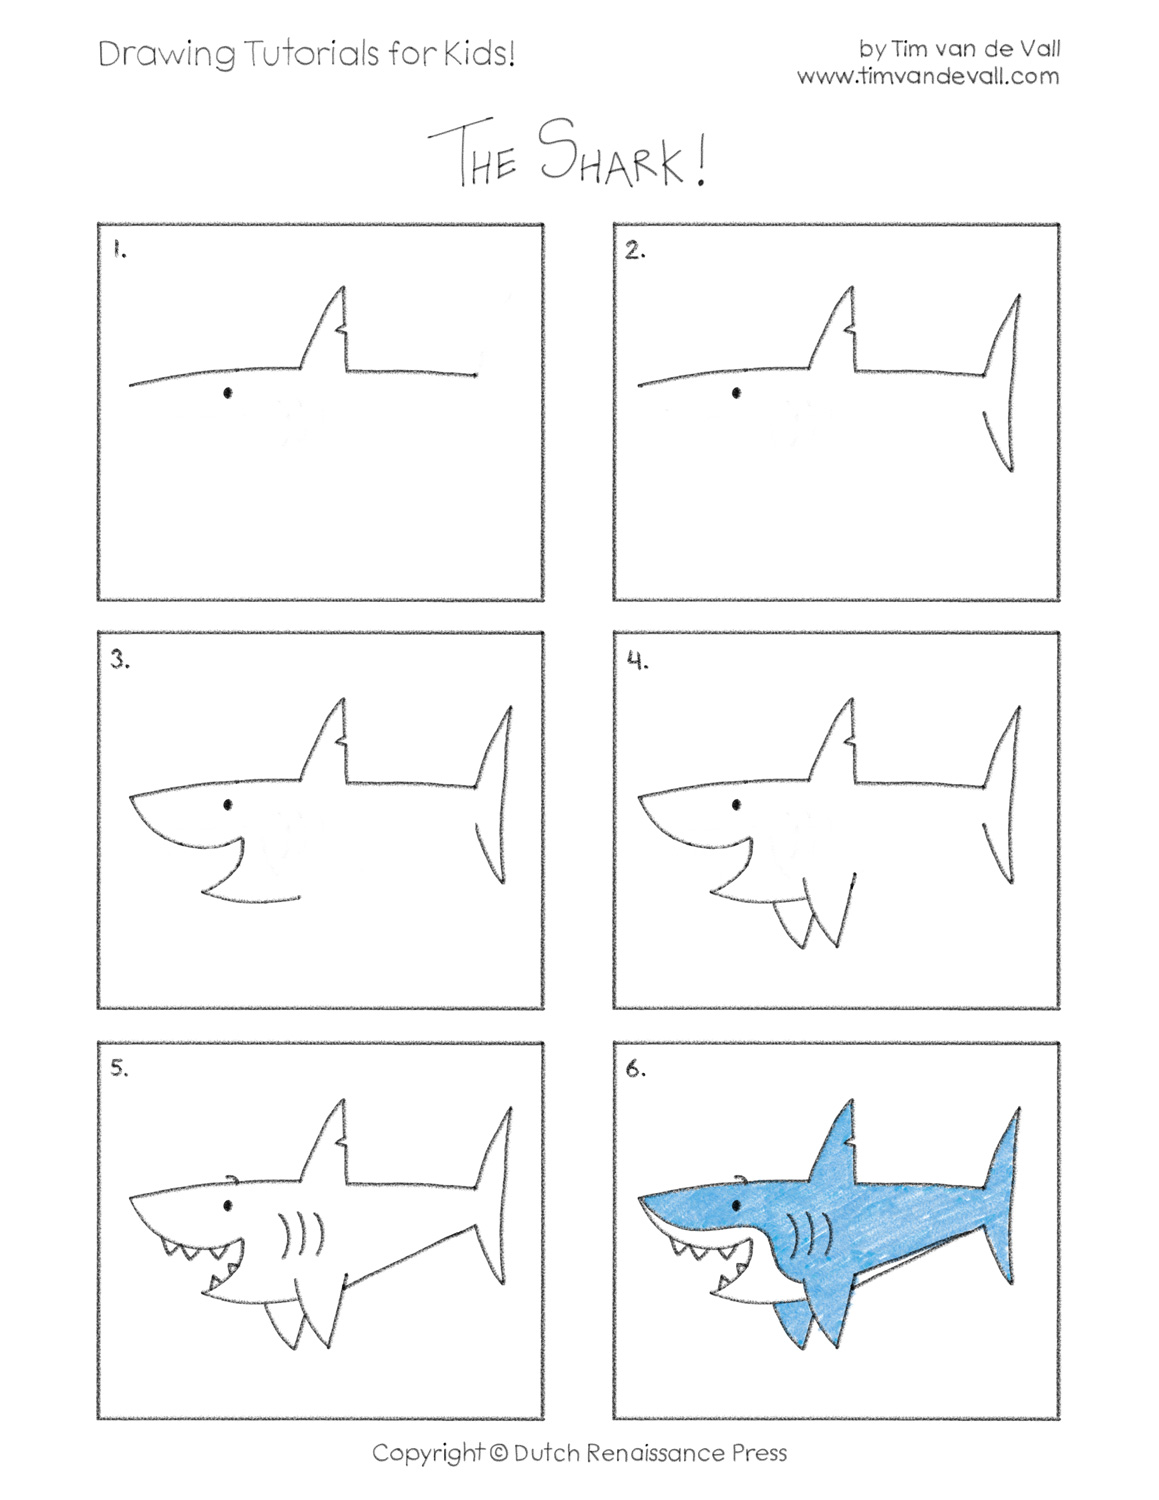 Easy drawing tutorials for kids printable drawing lessons for Learn drawing online step by step